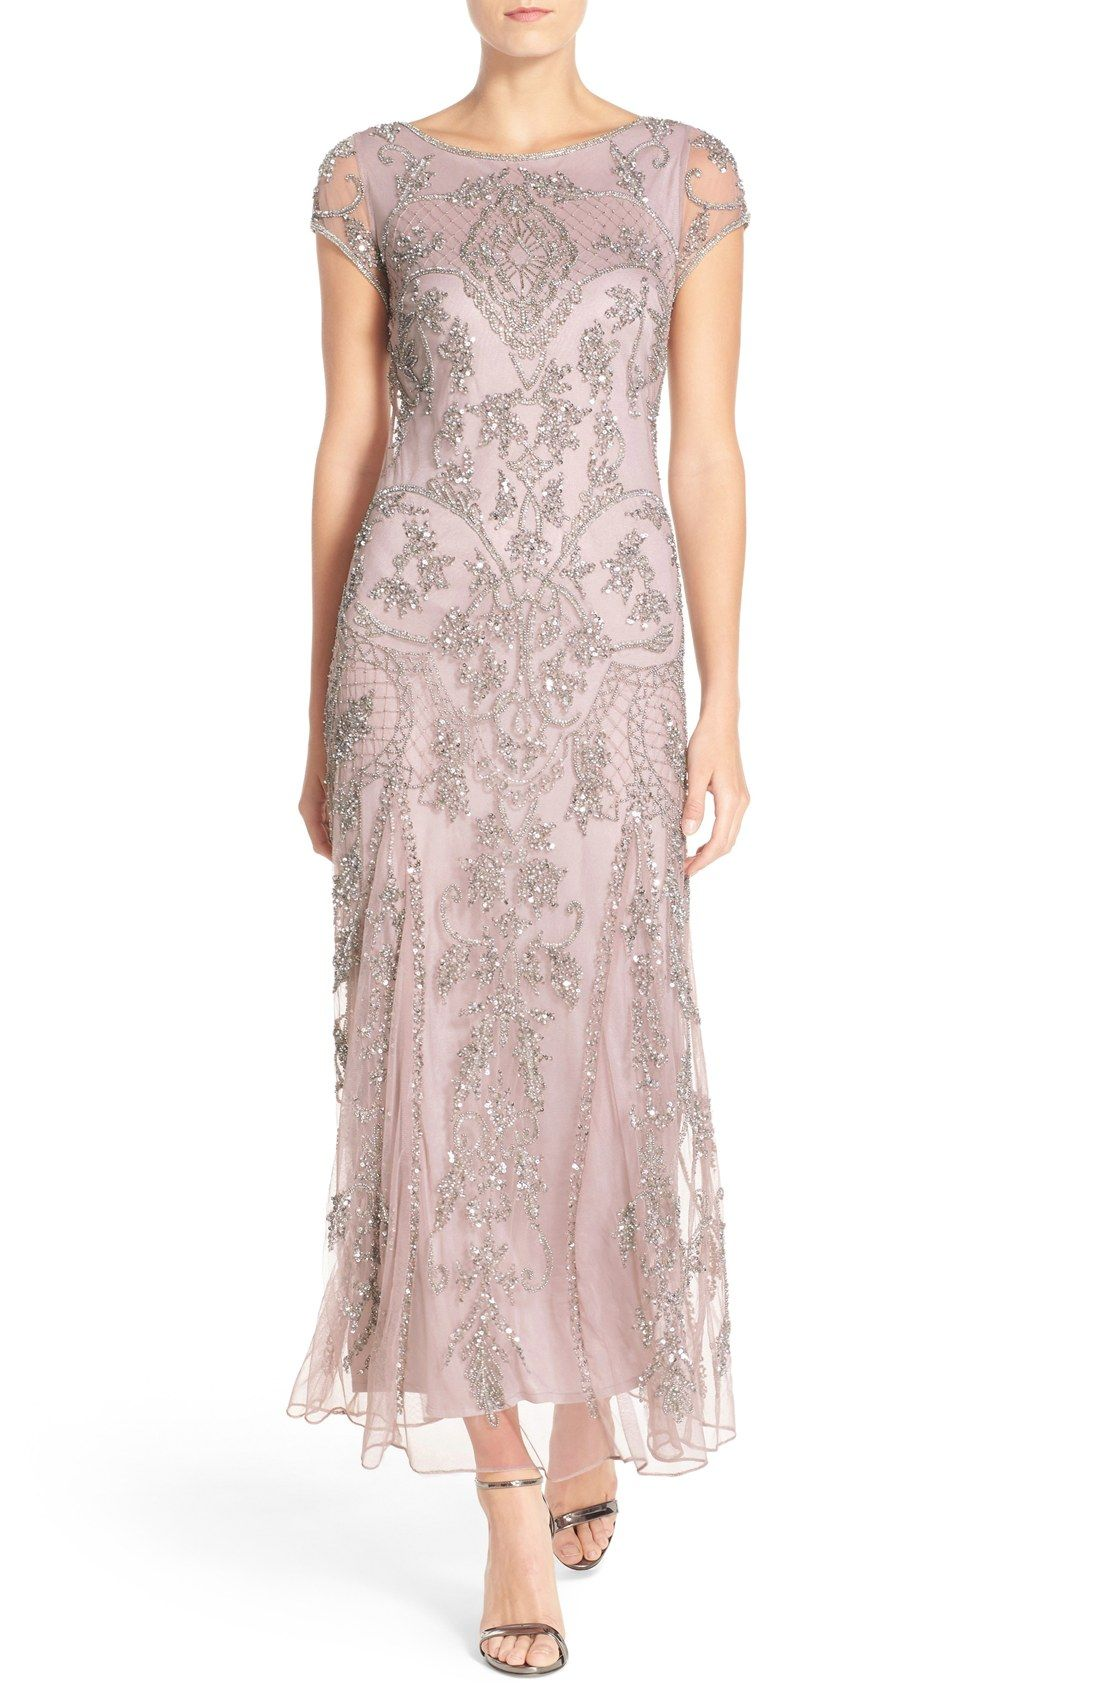 0b47bdfbc22 Hand-selected mother of the bride or groom dresses for mothers to wear to  weddings.